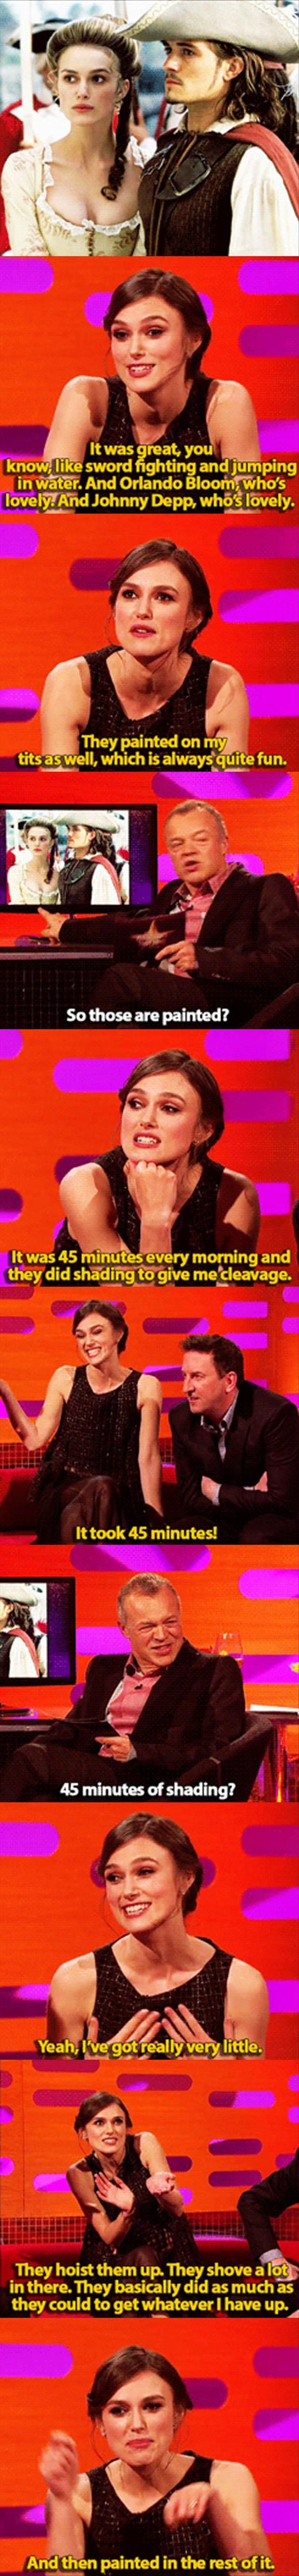 Kira knightly- painted ok cleavage. Lol! Dump A Day Funny Pictures Of The Day - 78 Pics